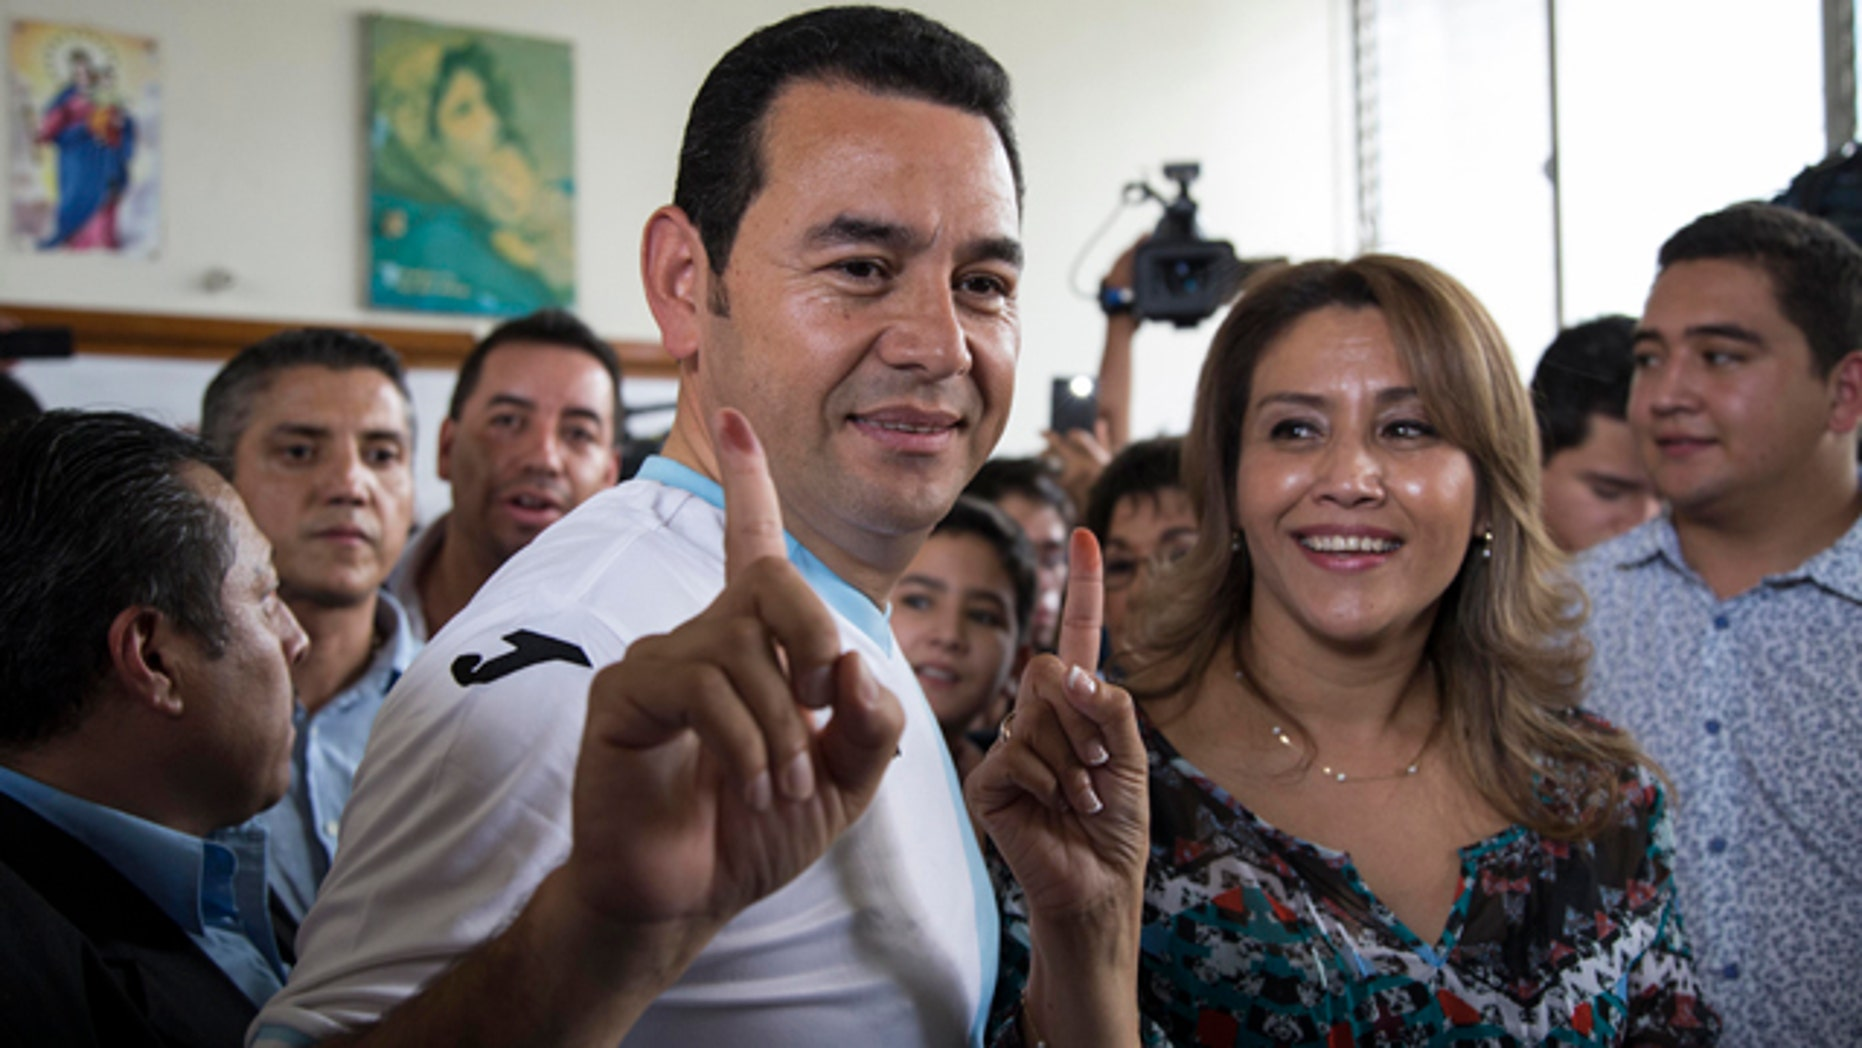 Oct. 25, 2015: Jimmy Morales, the National Front of Convergence party candidate, wearing the Guatemalan national soccer team jersey, accompanied by his wife Hilda Patricia Morales, show their inked fingers after casting their votes during the presidential runoff election at a polling station in Mixco, Guatemala. (AP Photo/Luis Soto)